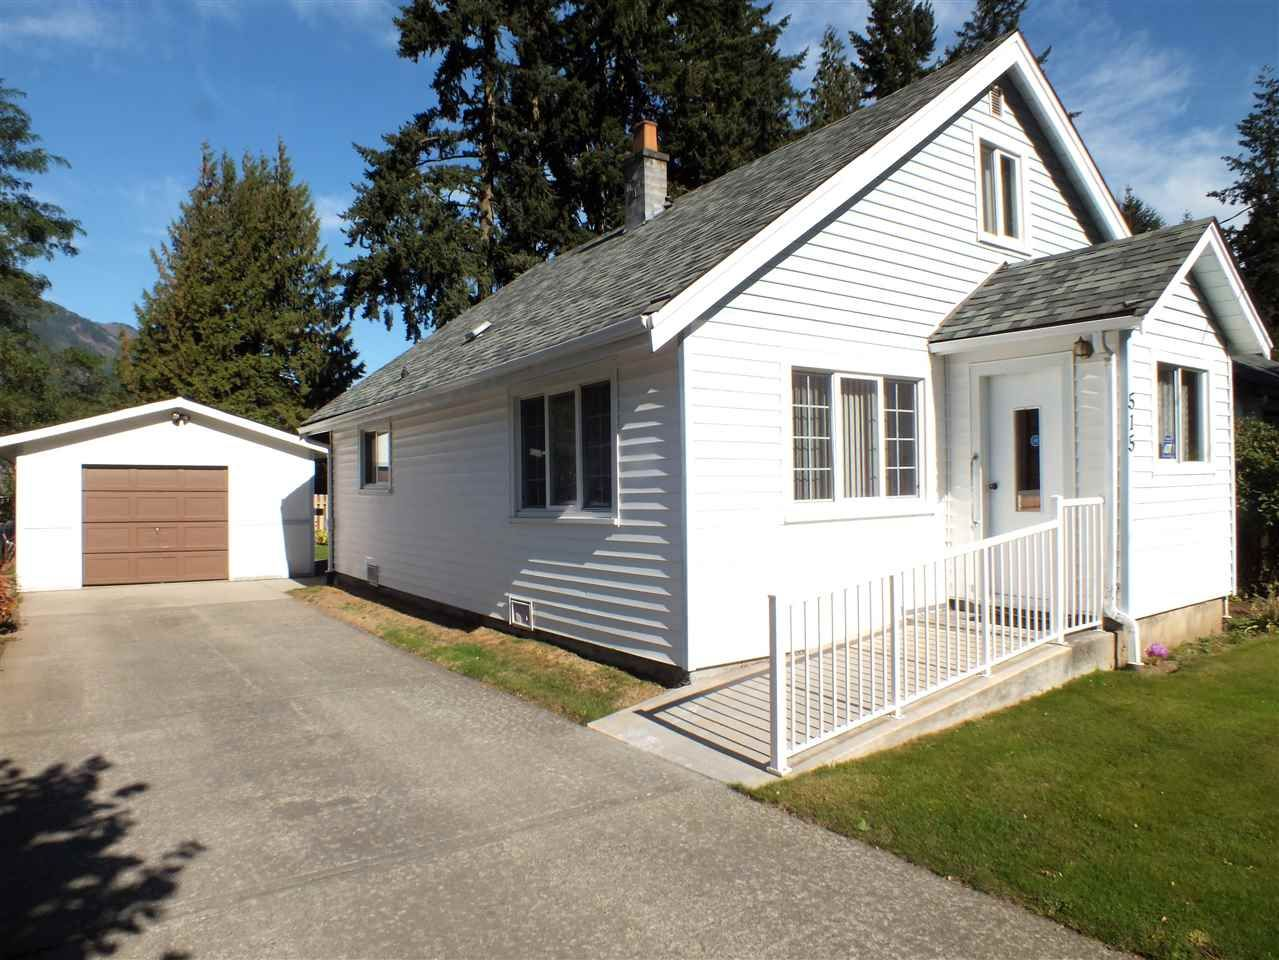 Main Photo: 515 COMMISSION Street in Hope: Hope Center House for sale : MLS®# R2478226